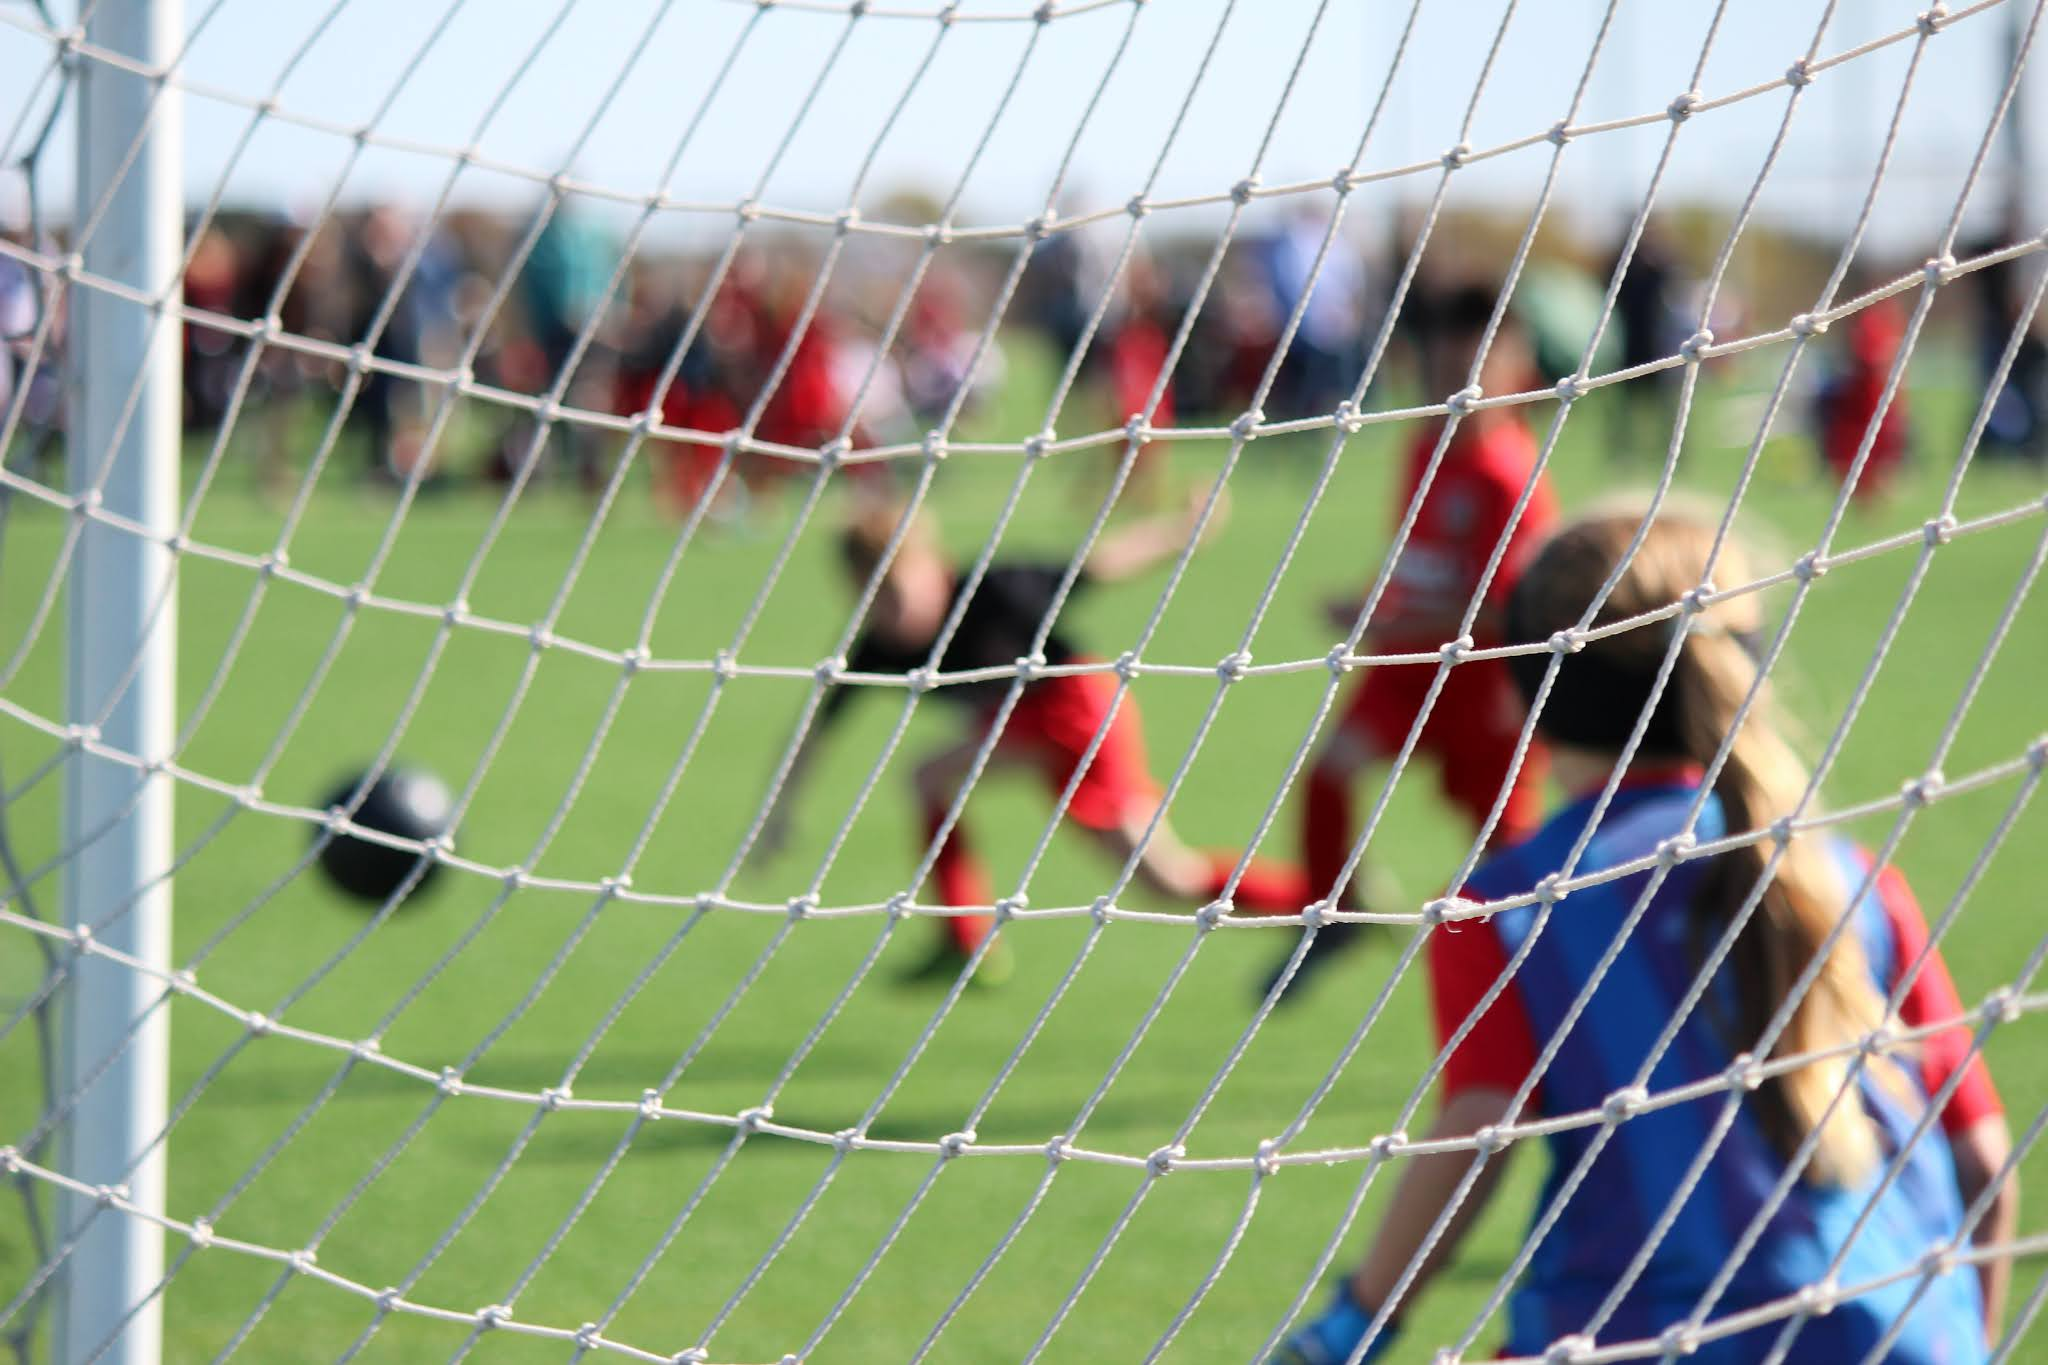 Free stock image by Alyssa Ledesma on Unsplash looking through a football goal at a football game played by children